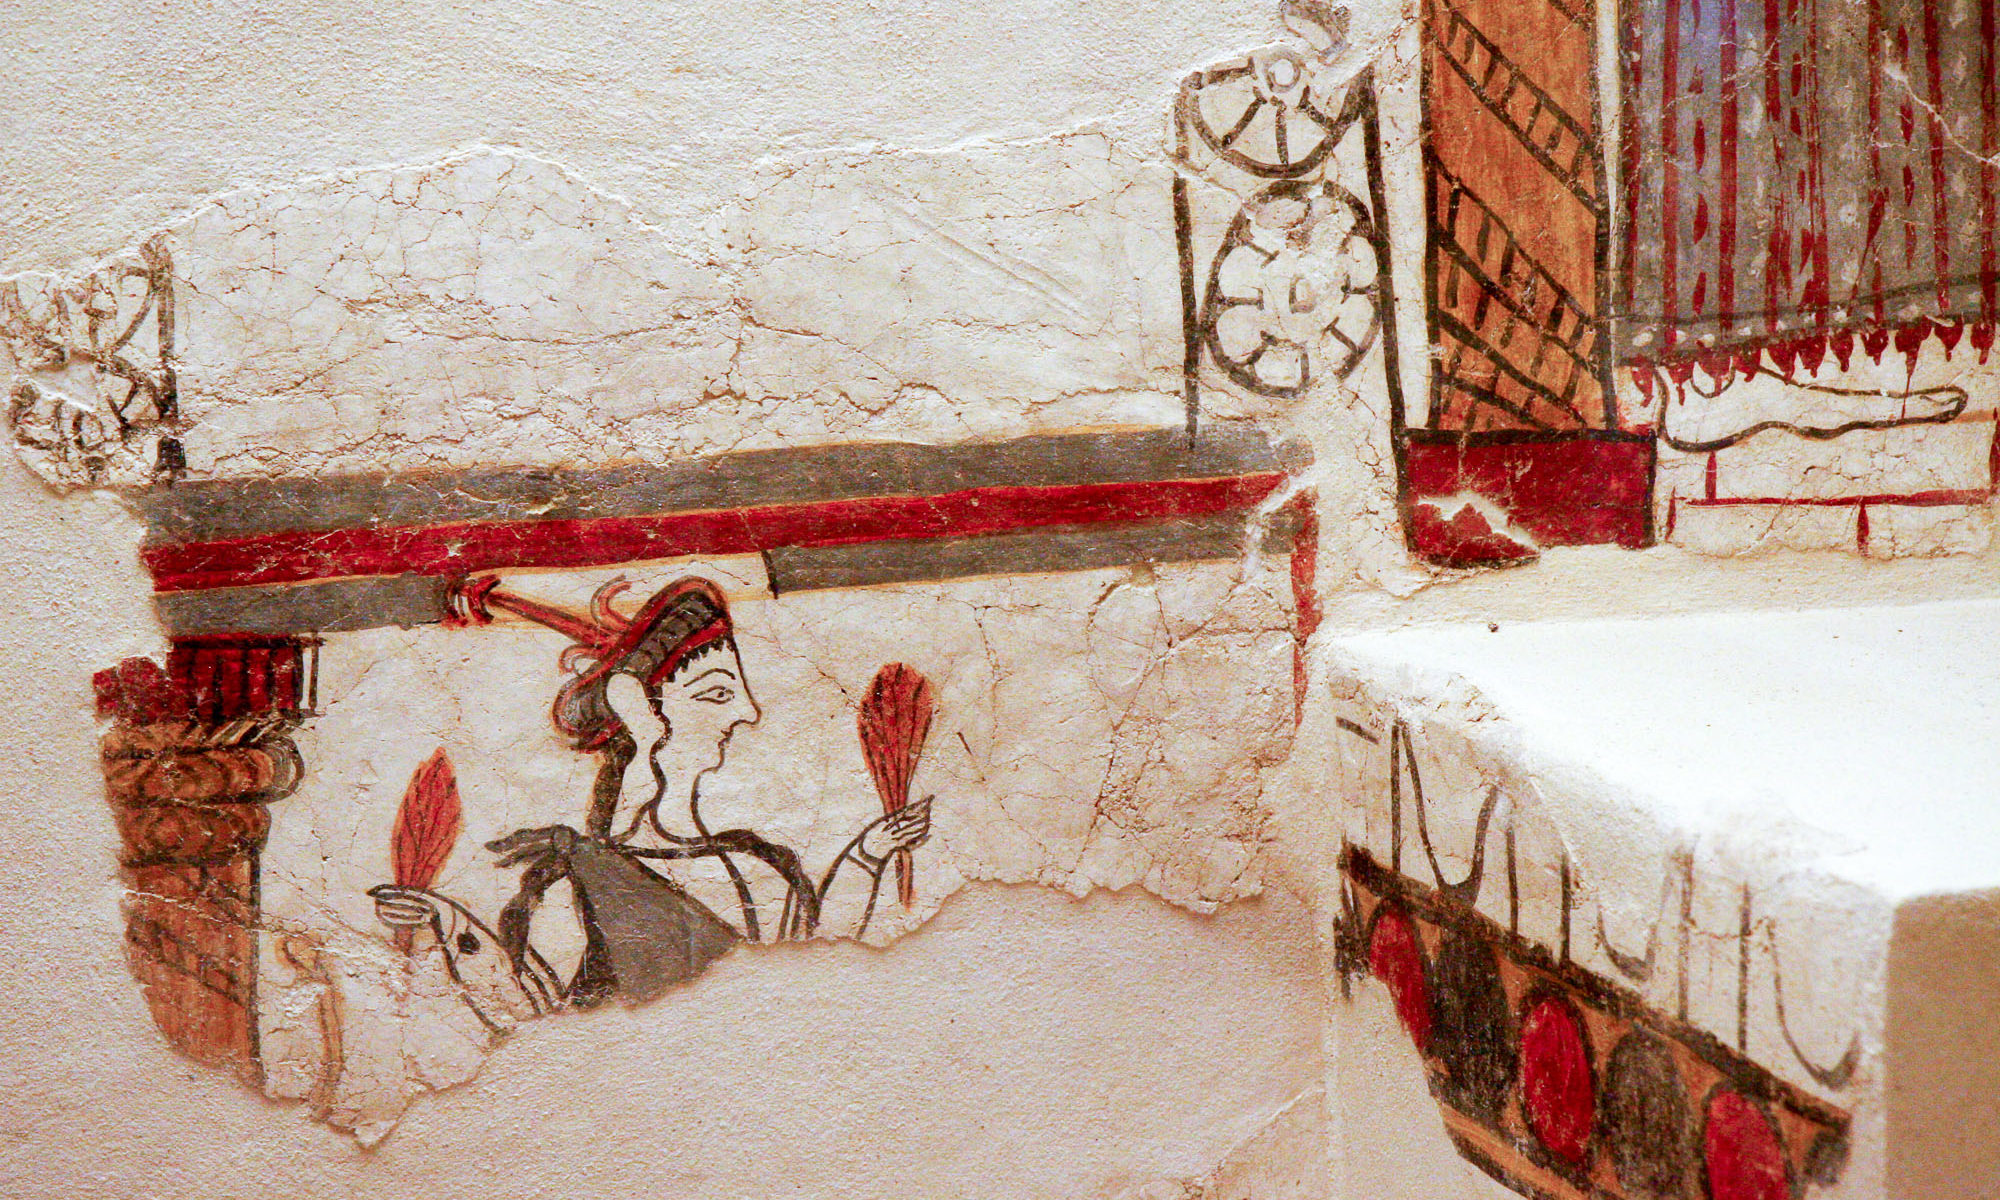 Detail of ancient wall painting of female figure